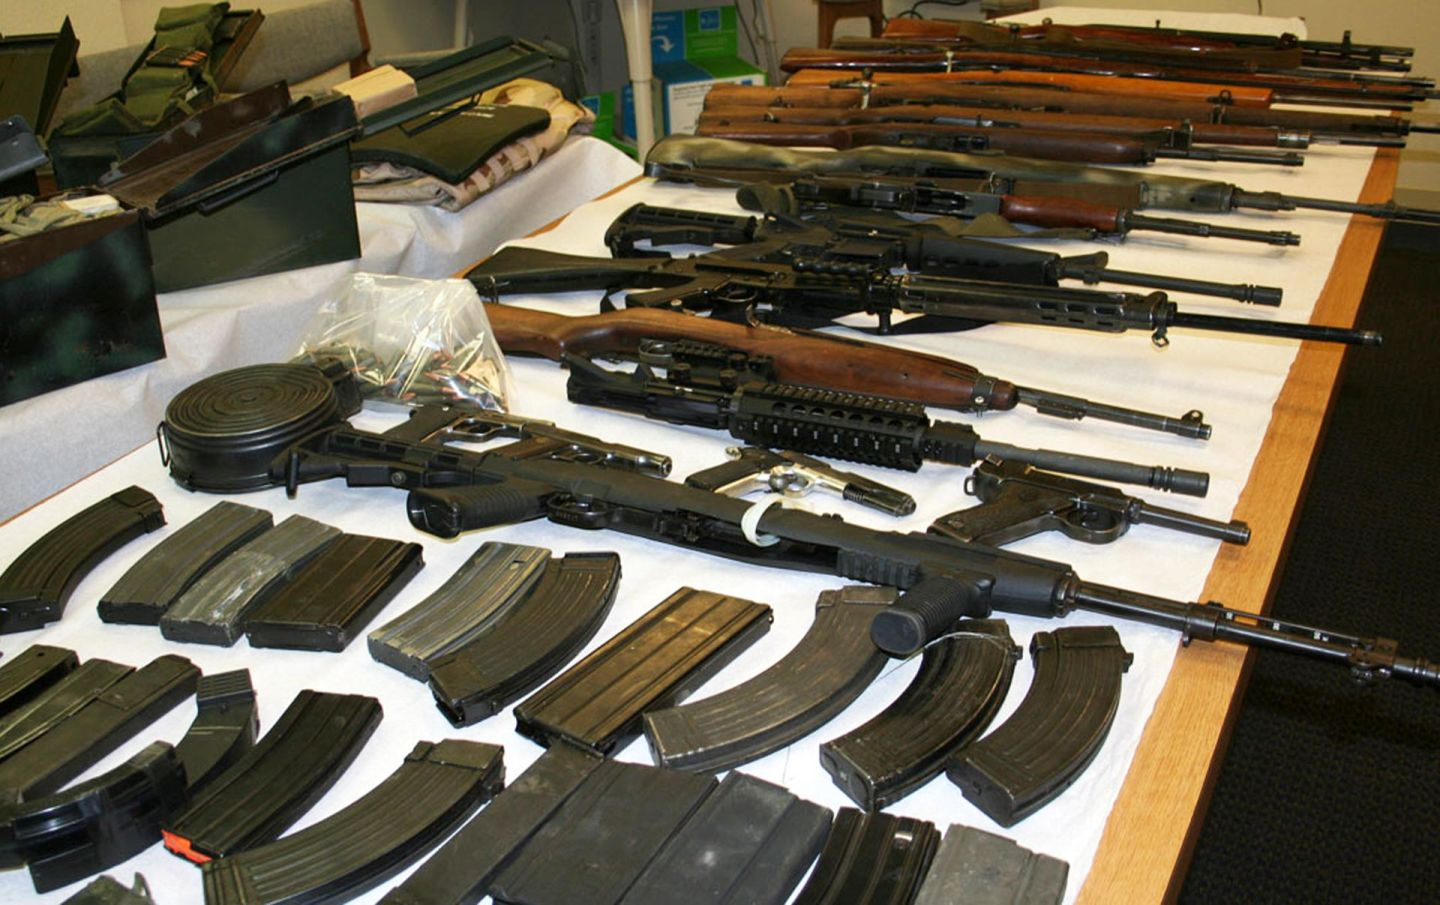 State Senate to Review Backlog of Over 10,000 Firearm Confiscation Cases